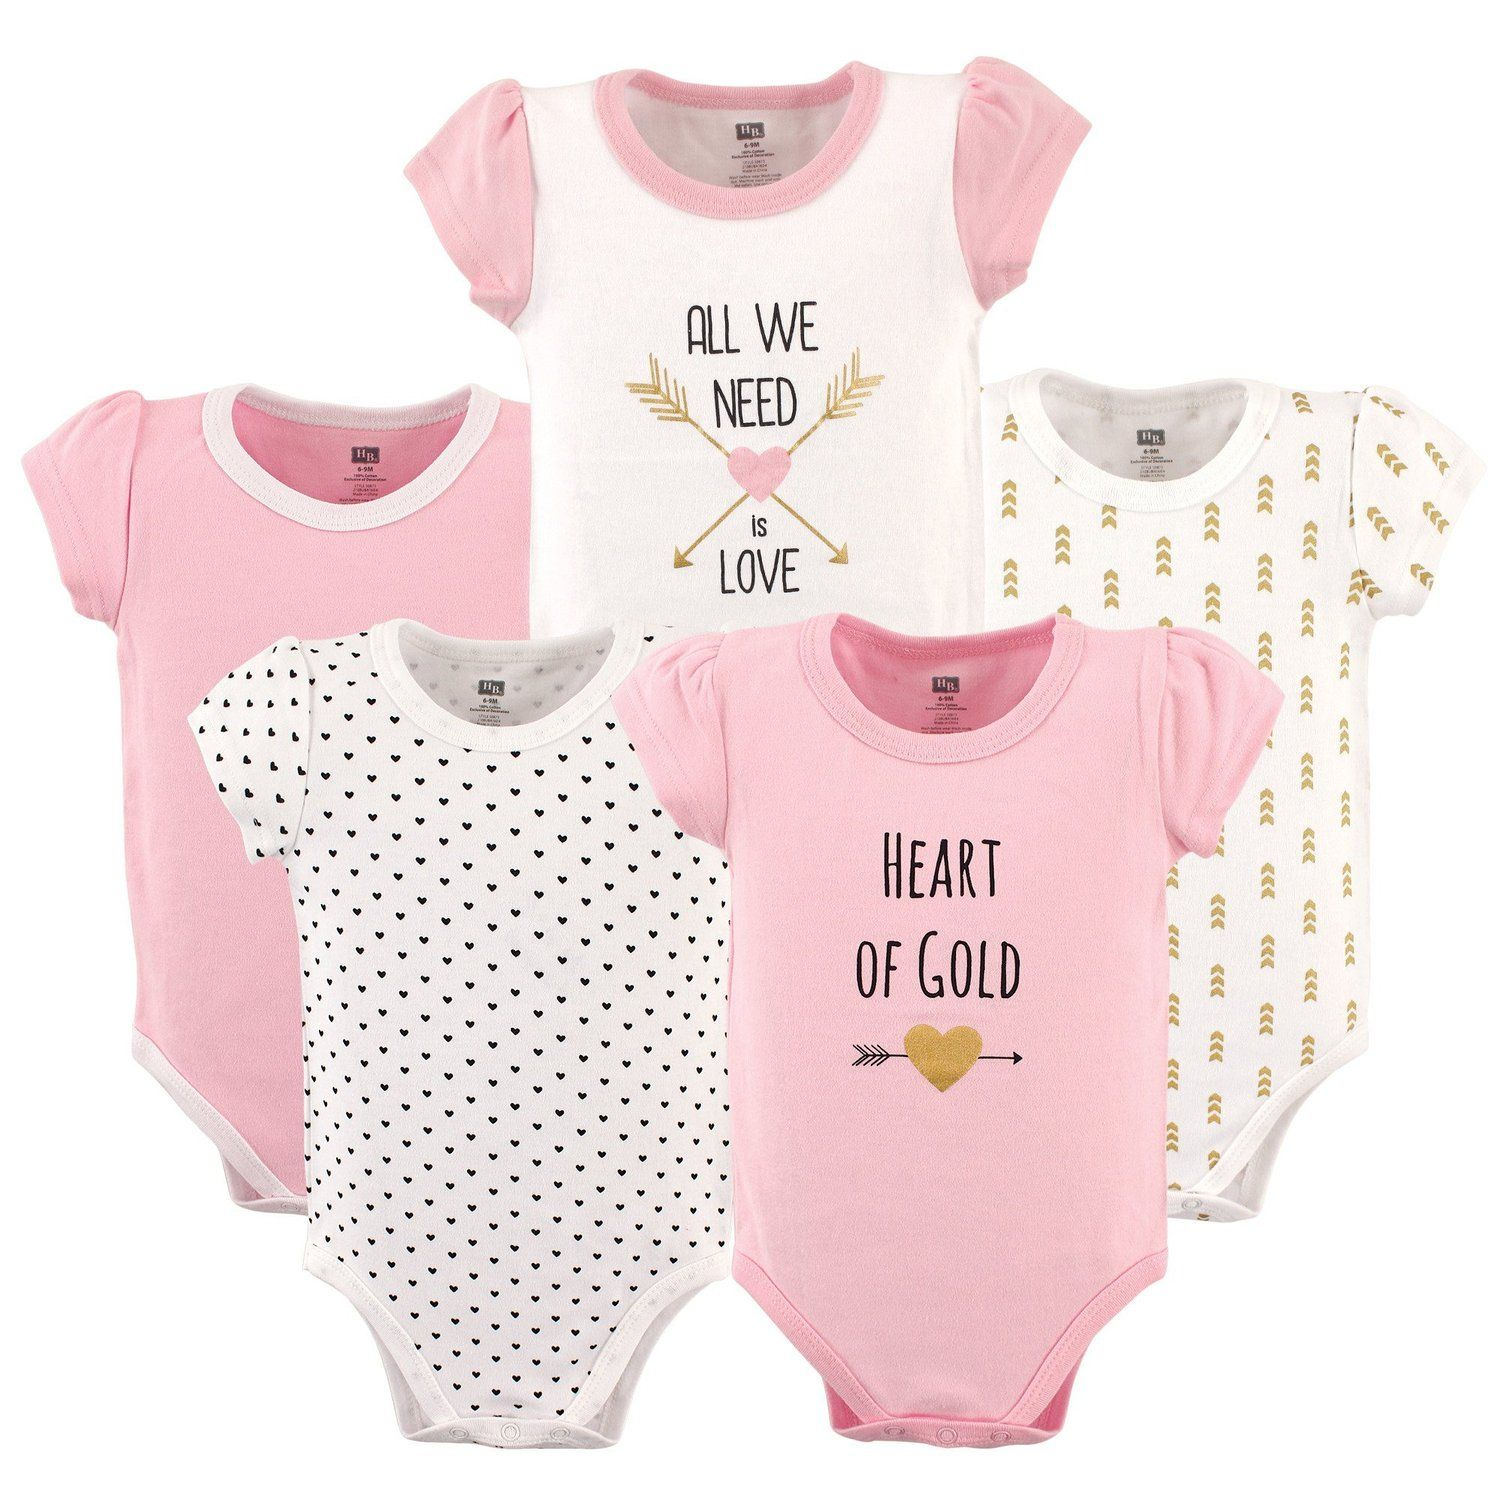 Hudson Baby 5 Pack Hanging Bodysuit Insider s special review you